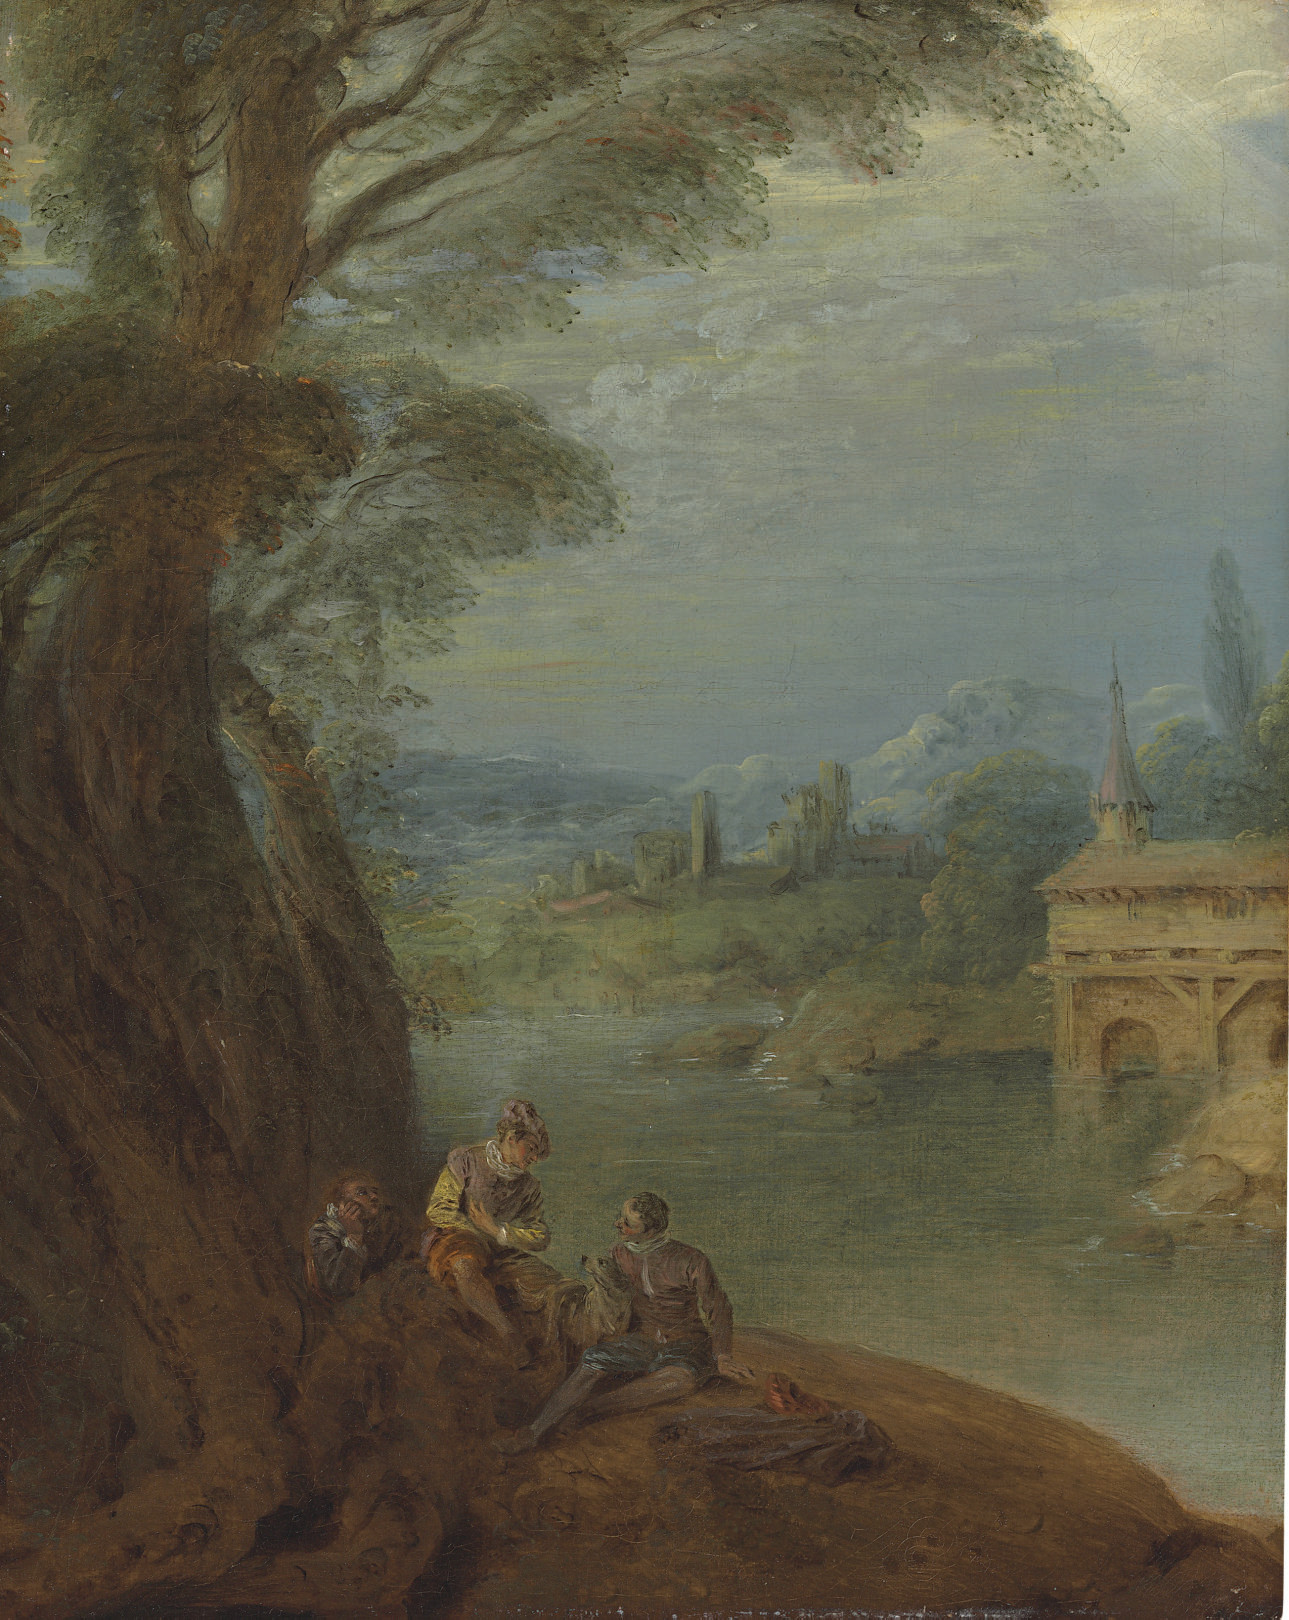 Elegant figures conversing by a riverbank